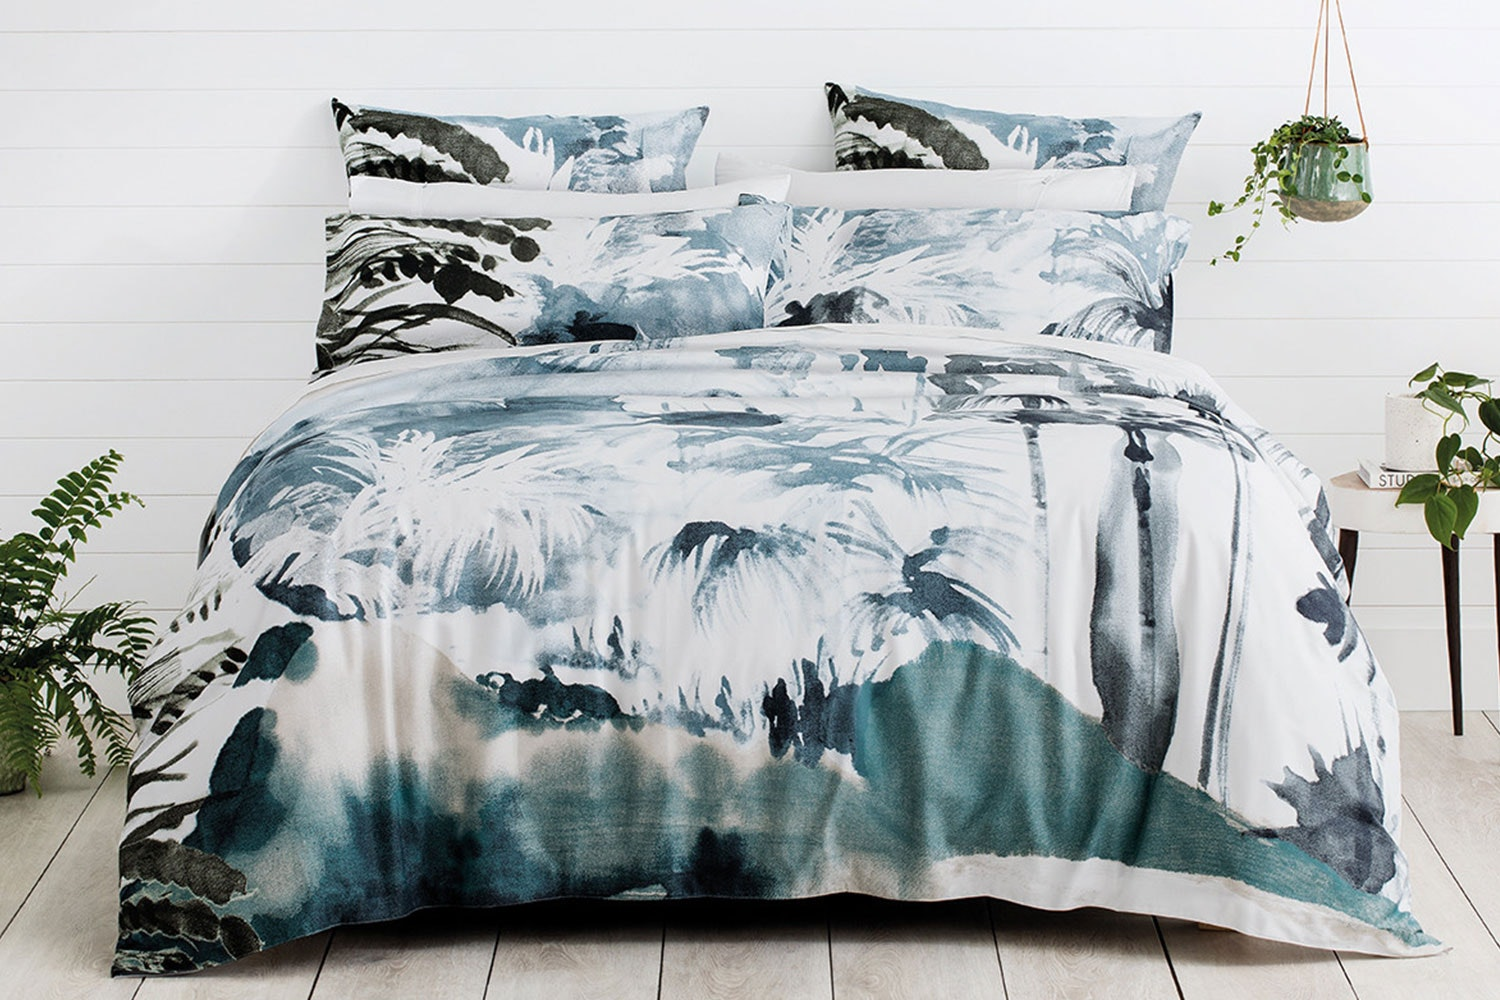 Mossgrove Duvet Cover Set by Sheridan